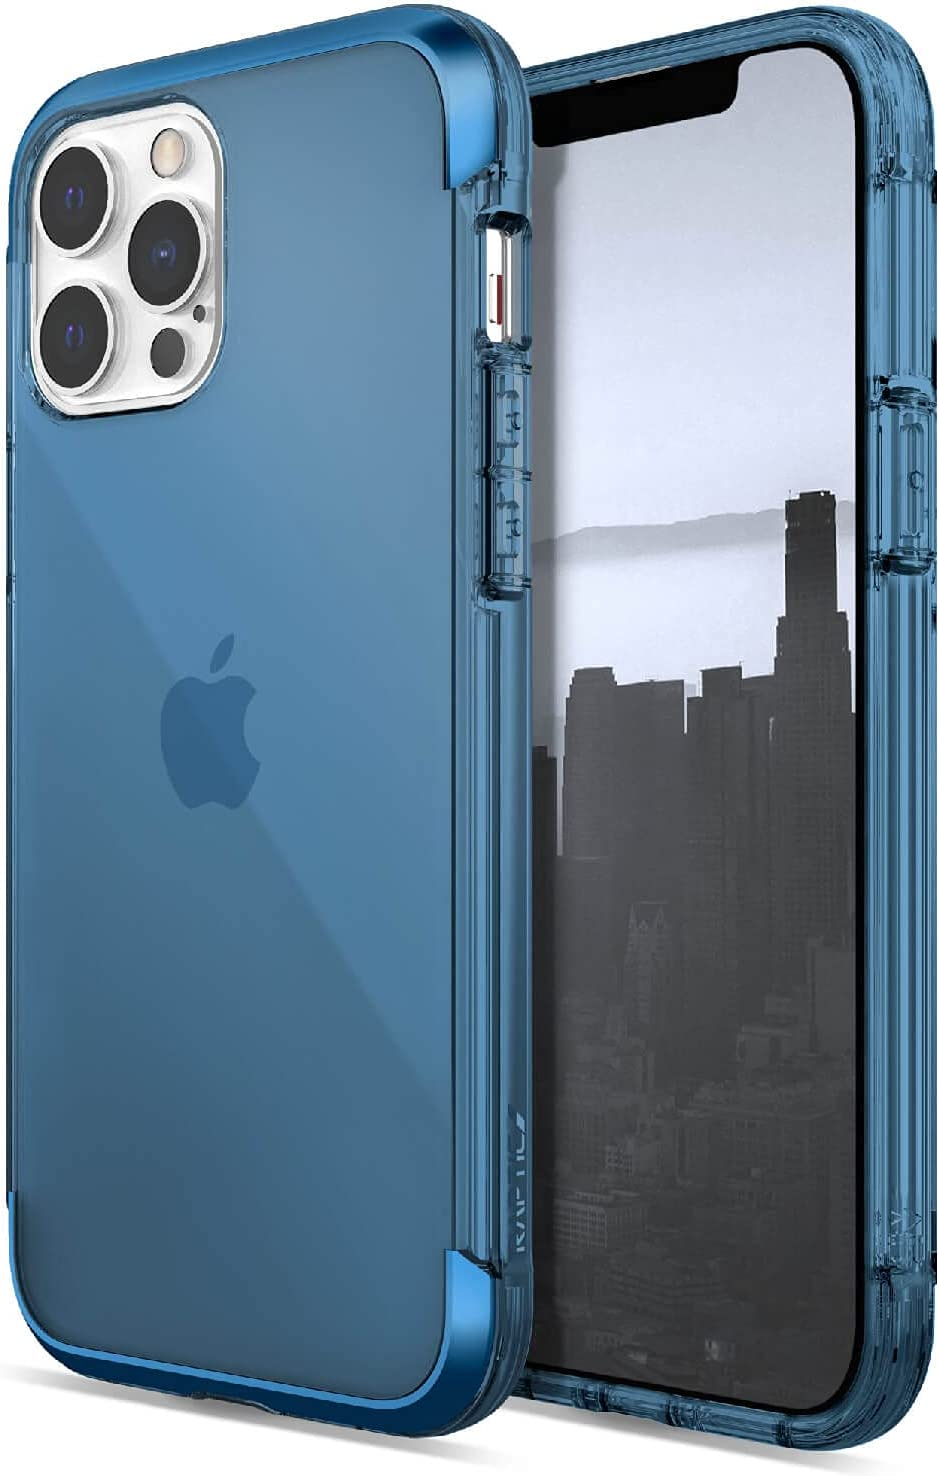 Raptic Air Case Compatible with iPhone 13 Pro Max Case, Scratch Resistant, Aluminum Metal Bumper, Wireless Charging, 13ft Drop Protection, Fits iPhone 13 Pro Max, Blue